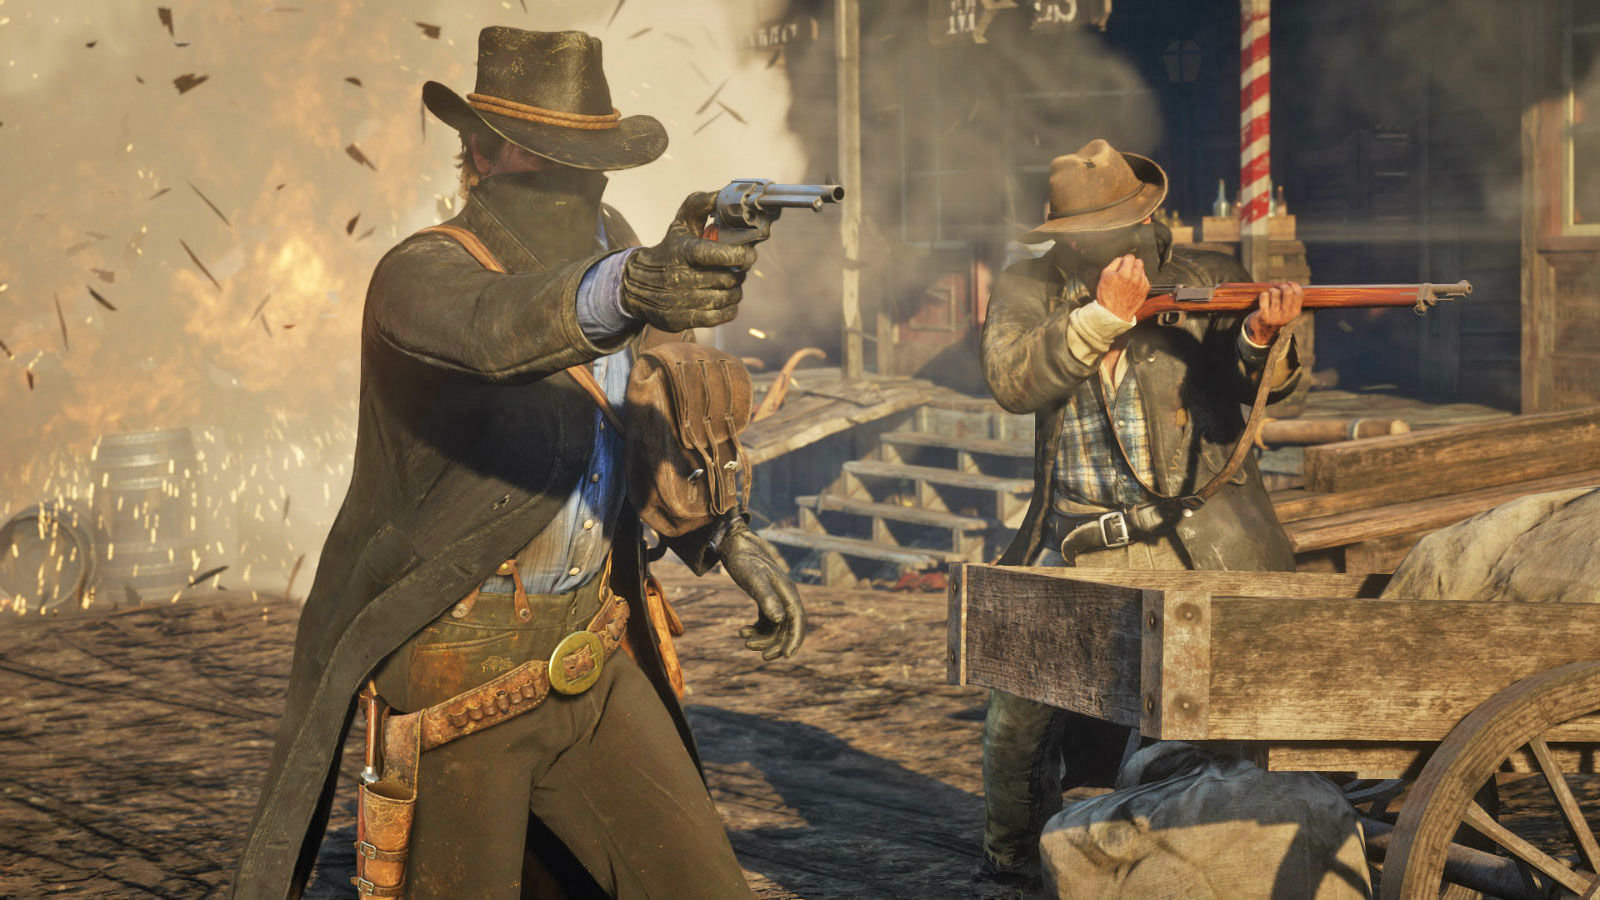 Rockstar Editor is coming to Red Dead Redemption 2 for consoles, and PC: Details inside